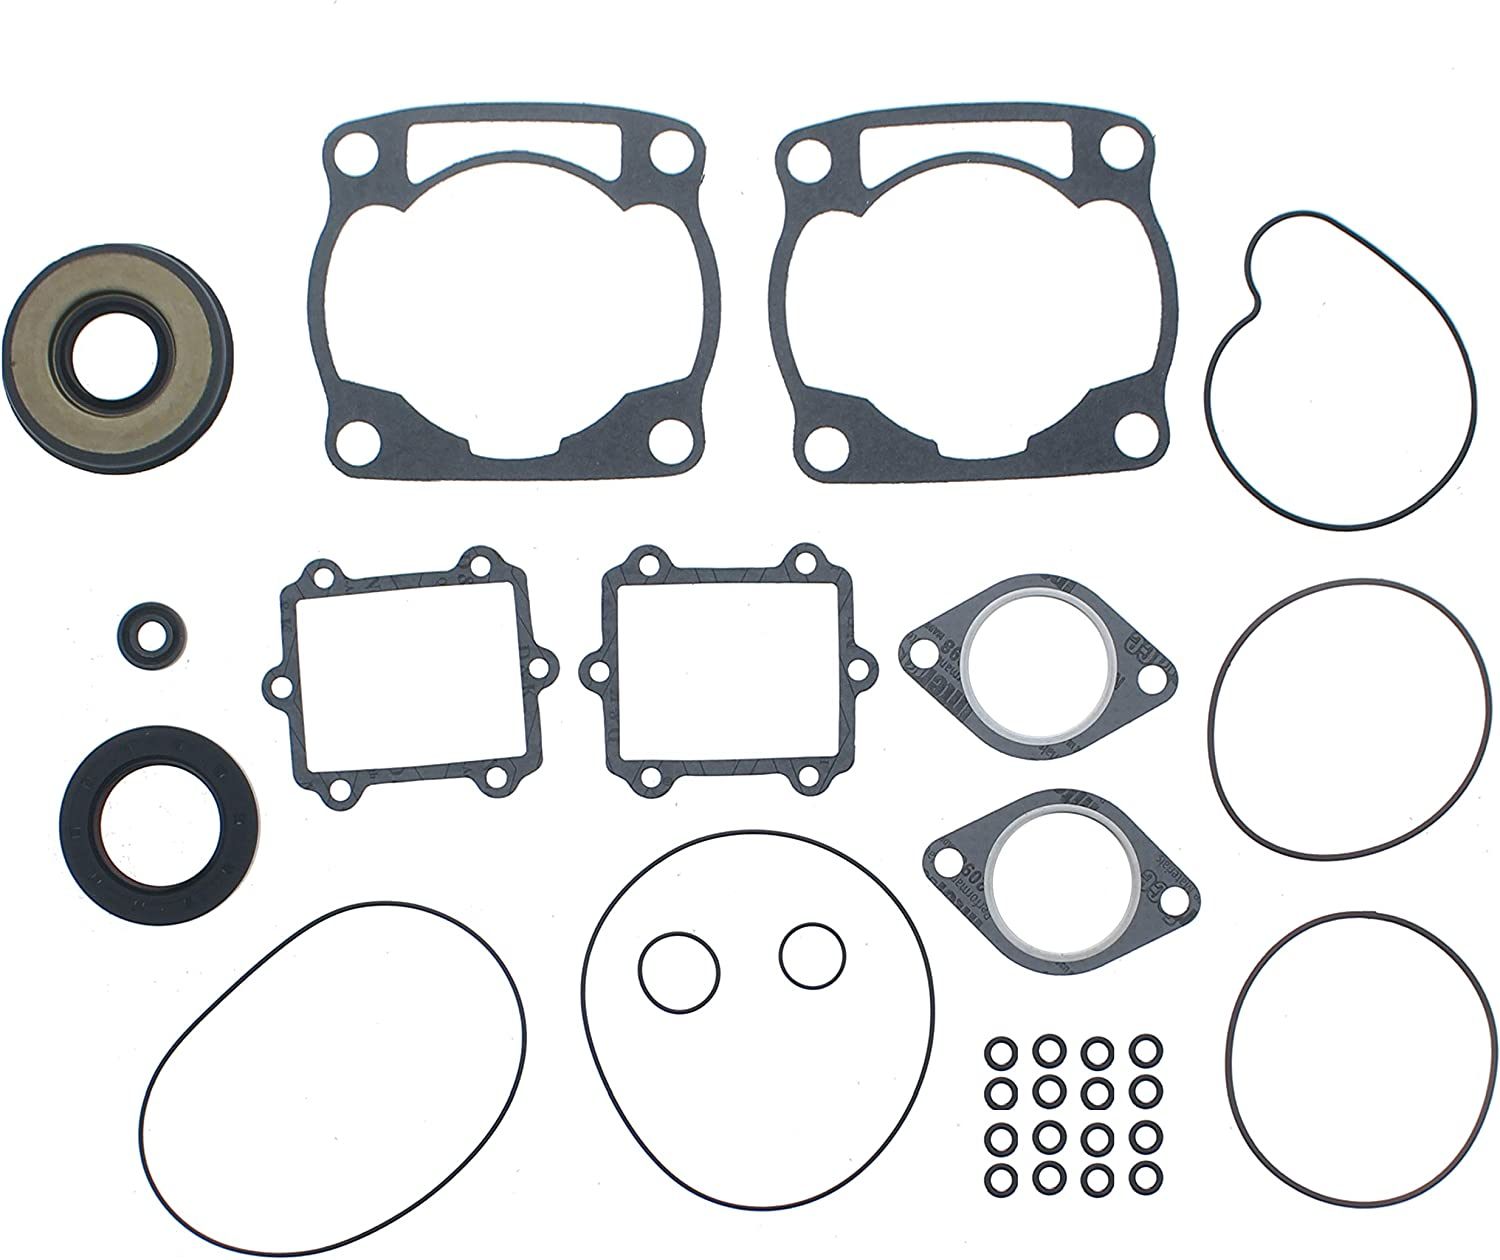 Piston and Gasket Kit for Arctic Cat ZL 500 1998 1999 2000 by Race-Driven